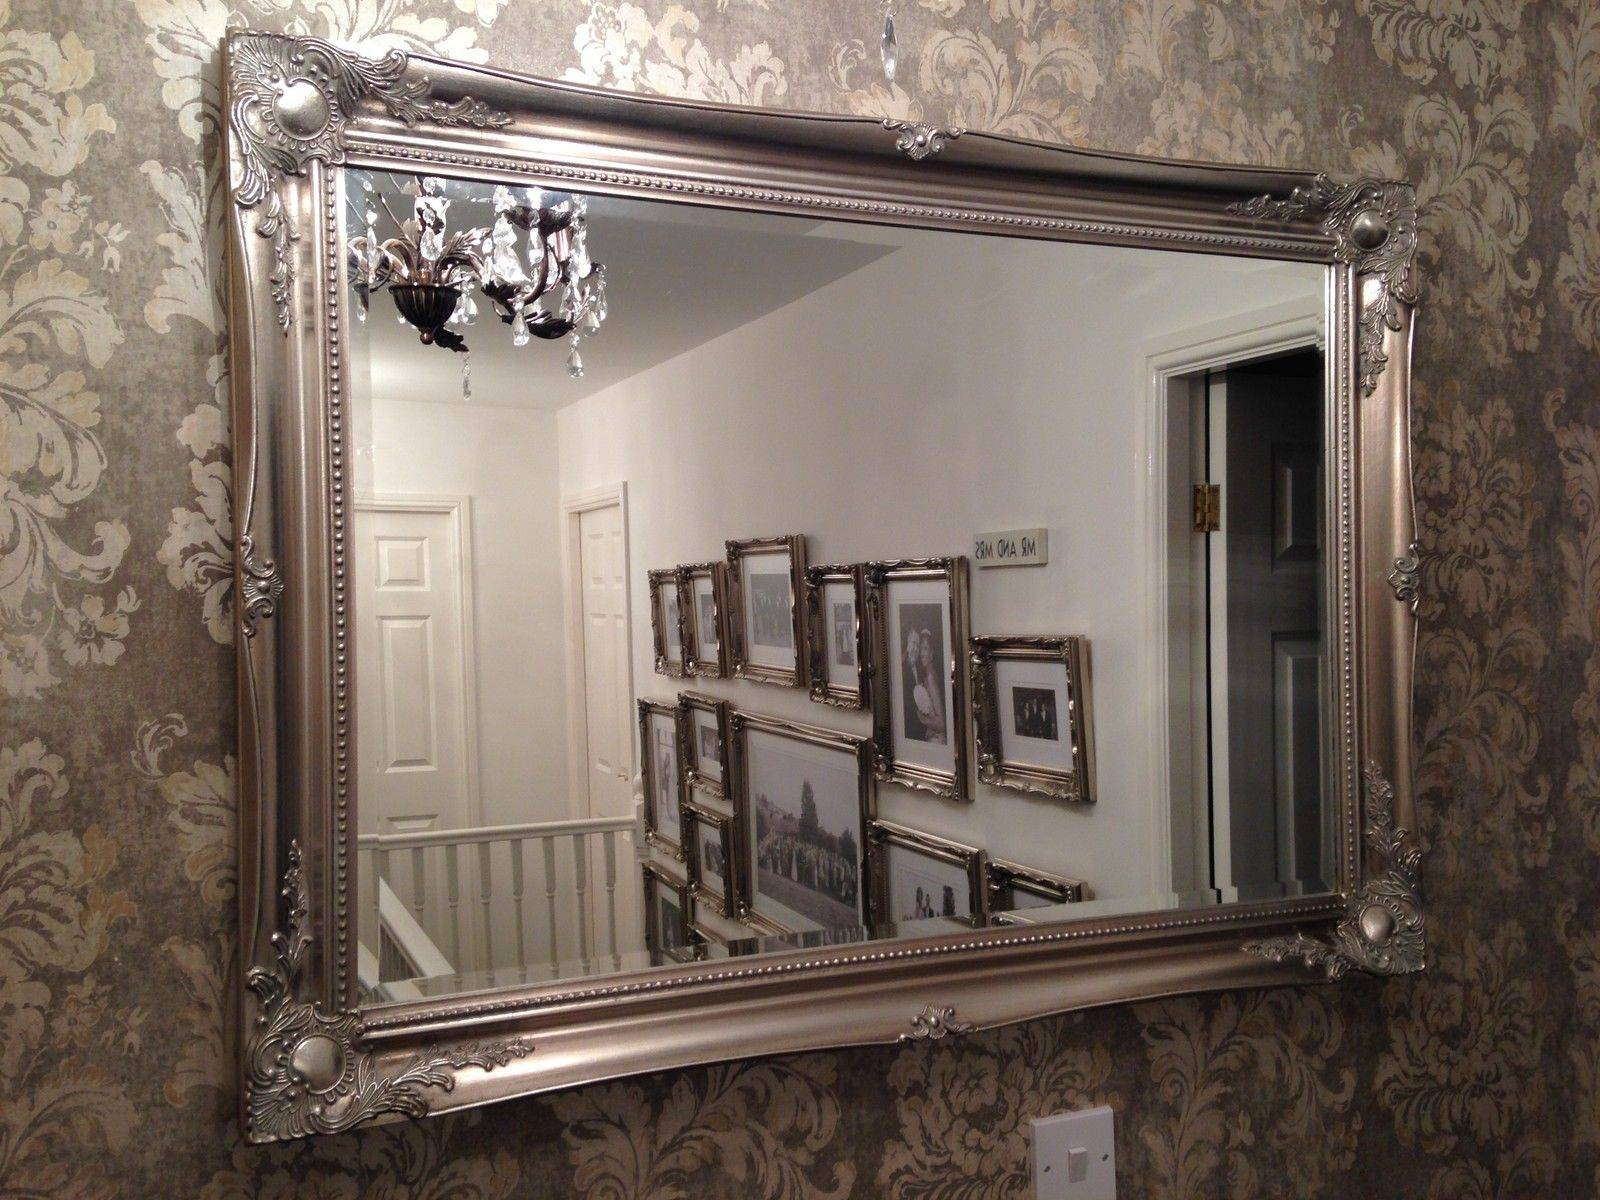 X Large Antique Silver Shabby Chic Ornate Decorative Wall Mirror regarding Large Antique Silver Mirrors (Image 13 of 15)